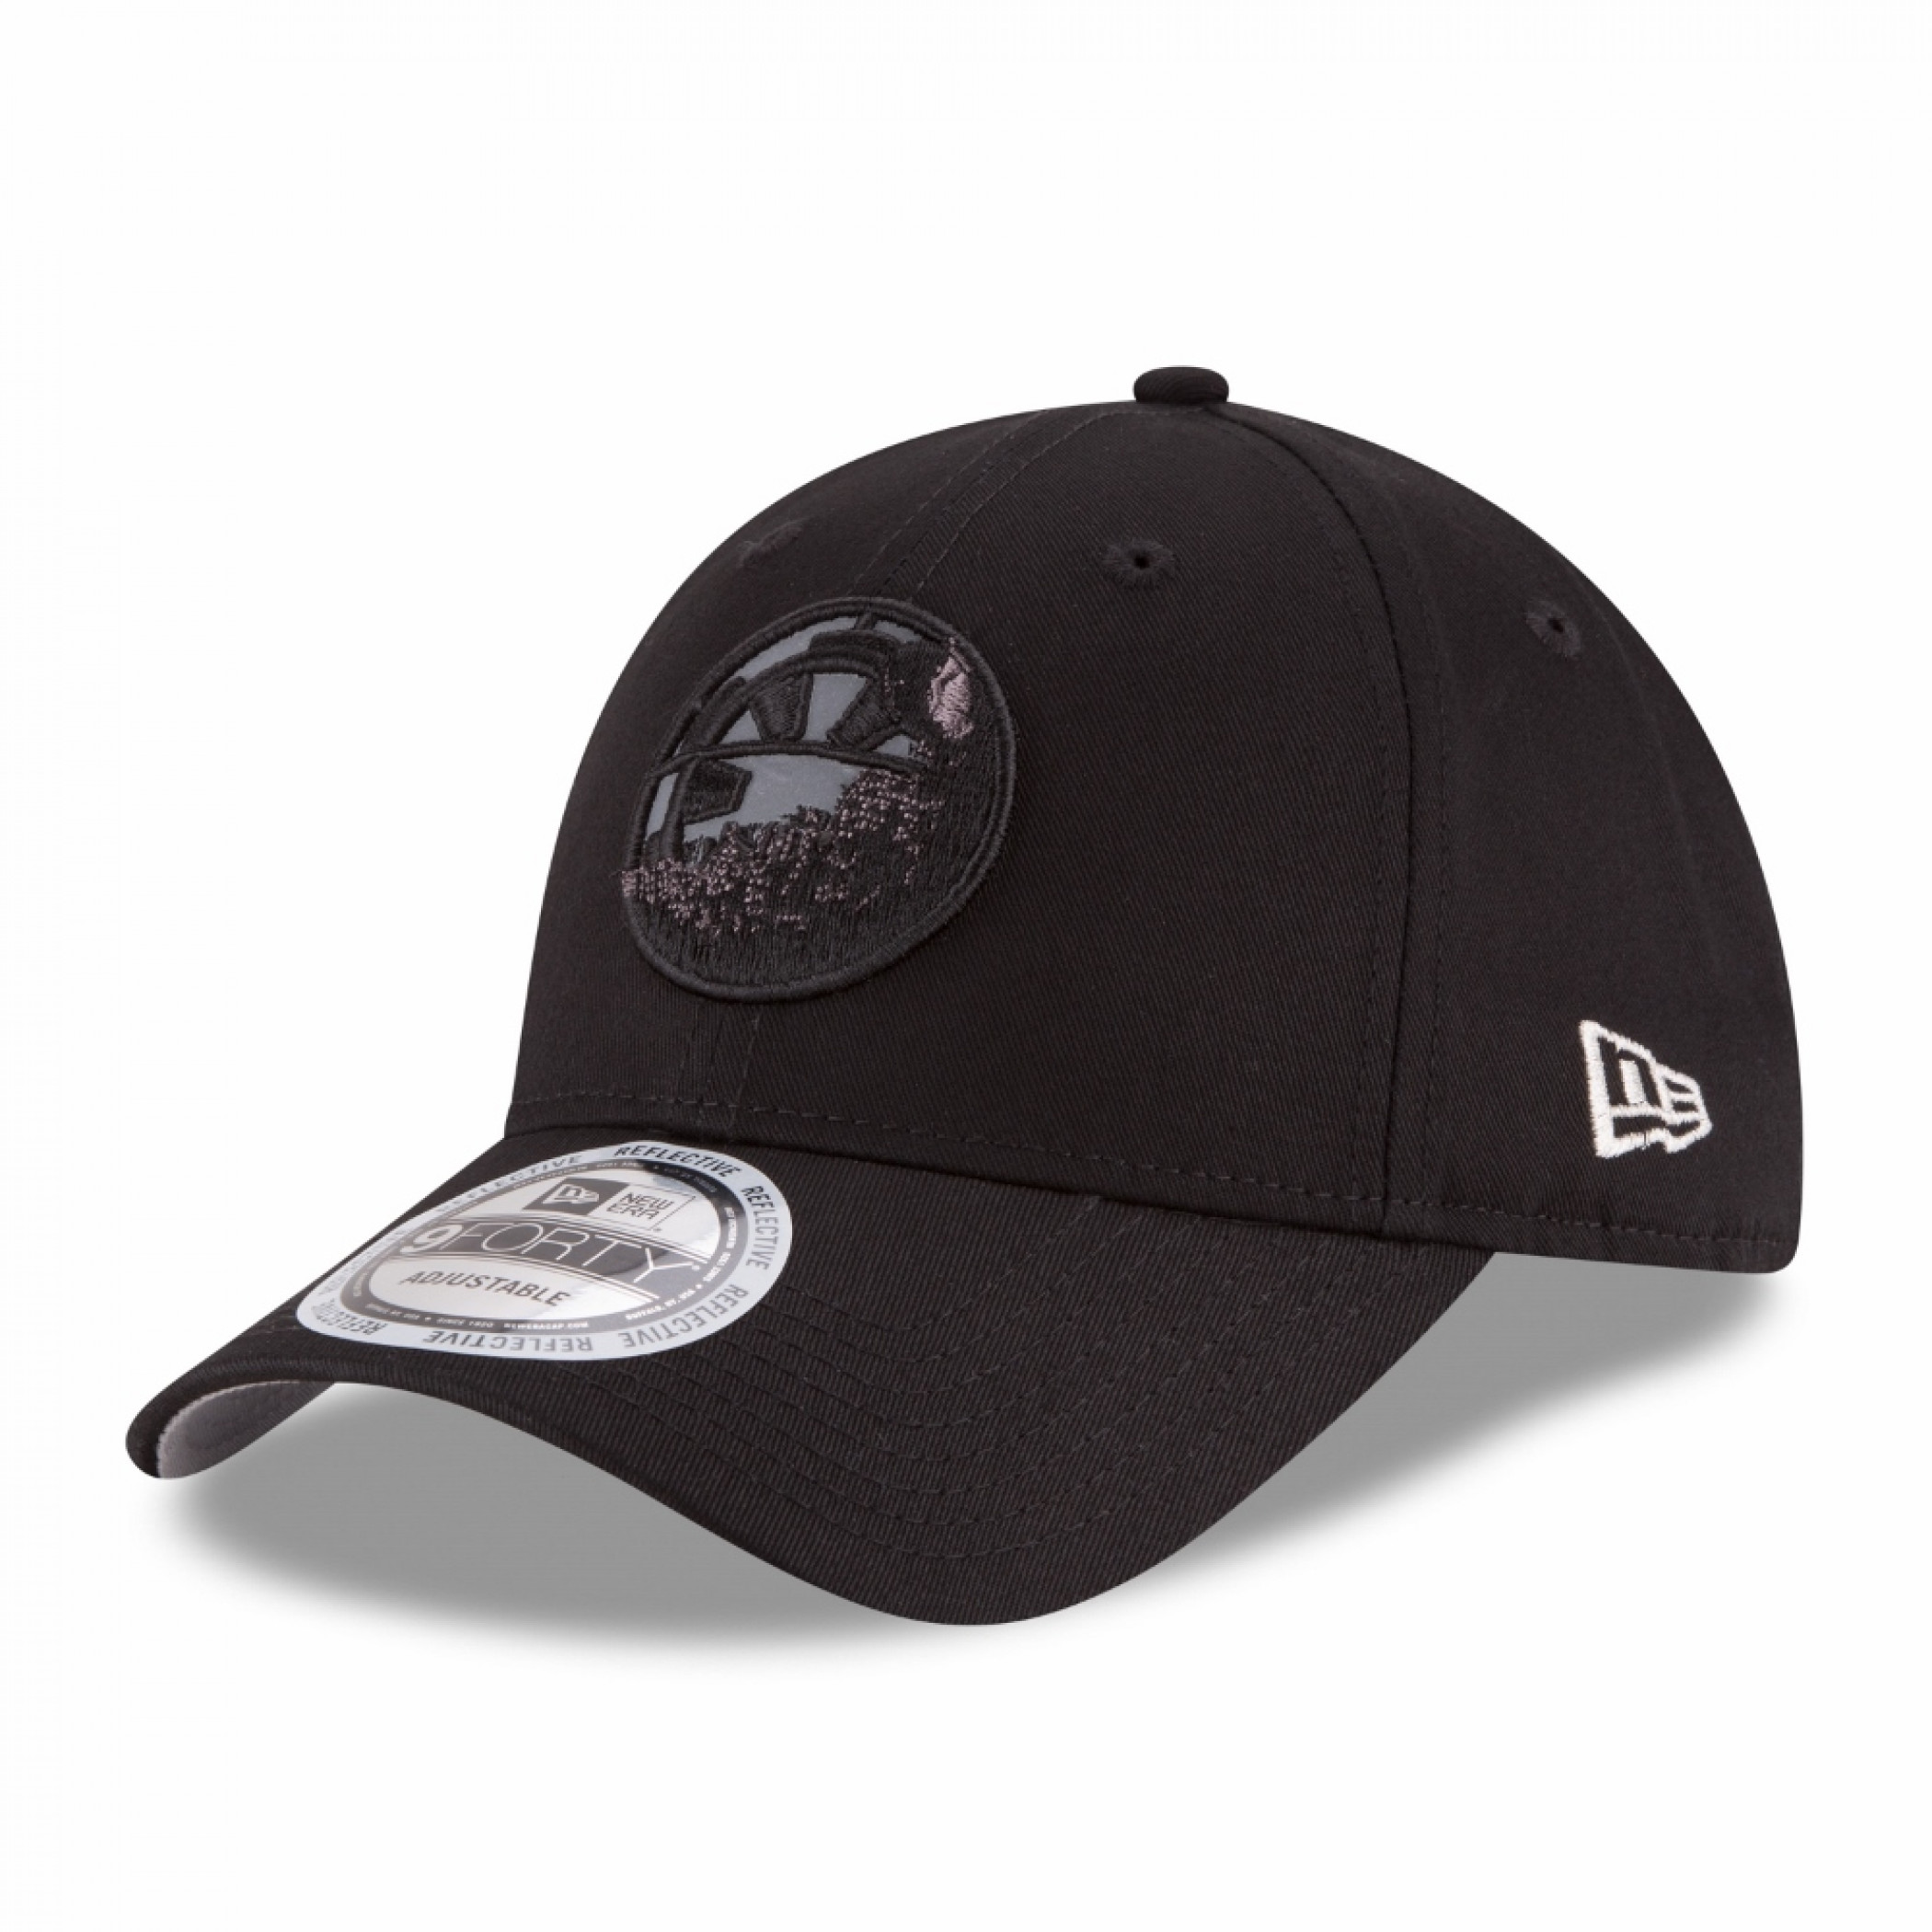 Star Wars Empire Inside the Death Star New Era 9Forty Adjustable Hat